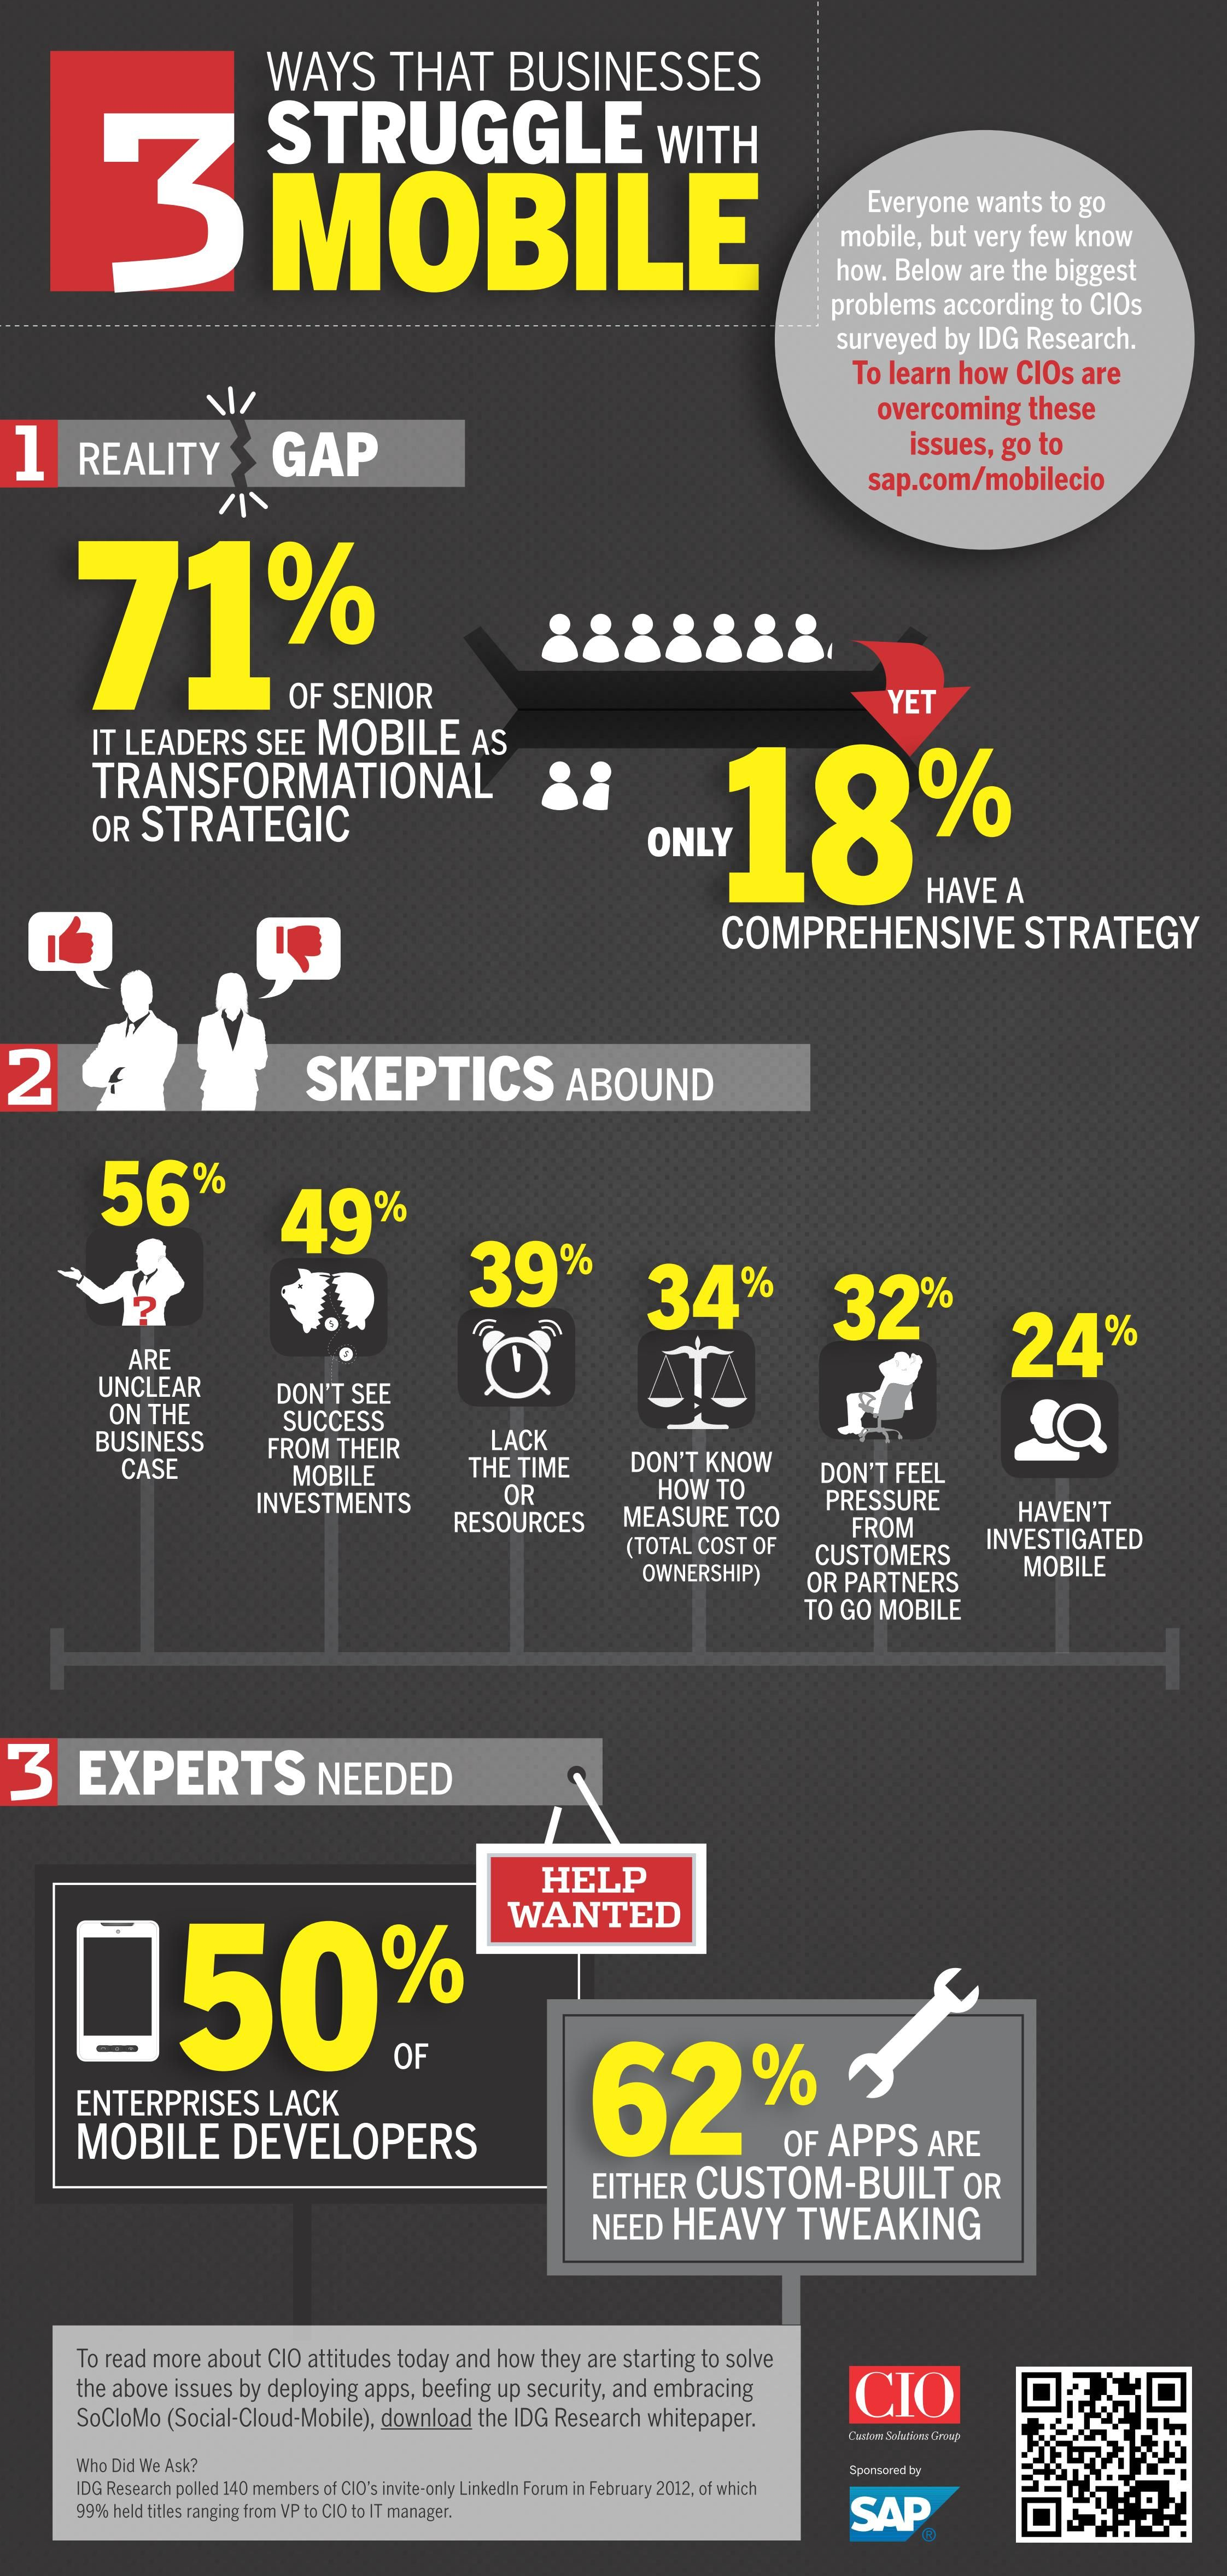 Three ways that businesses struggle mobile [infographic] (so true!)